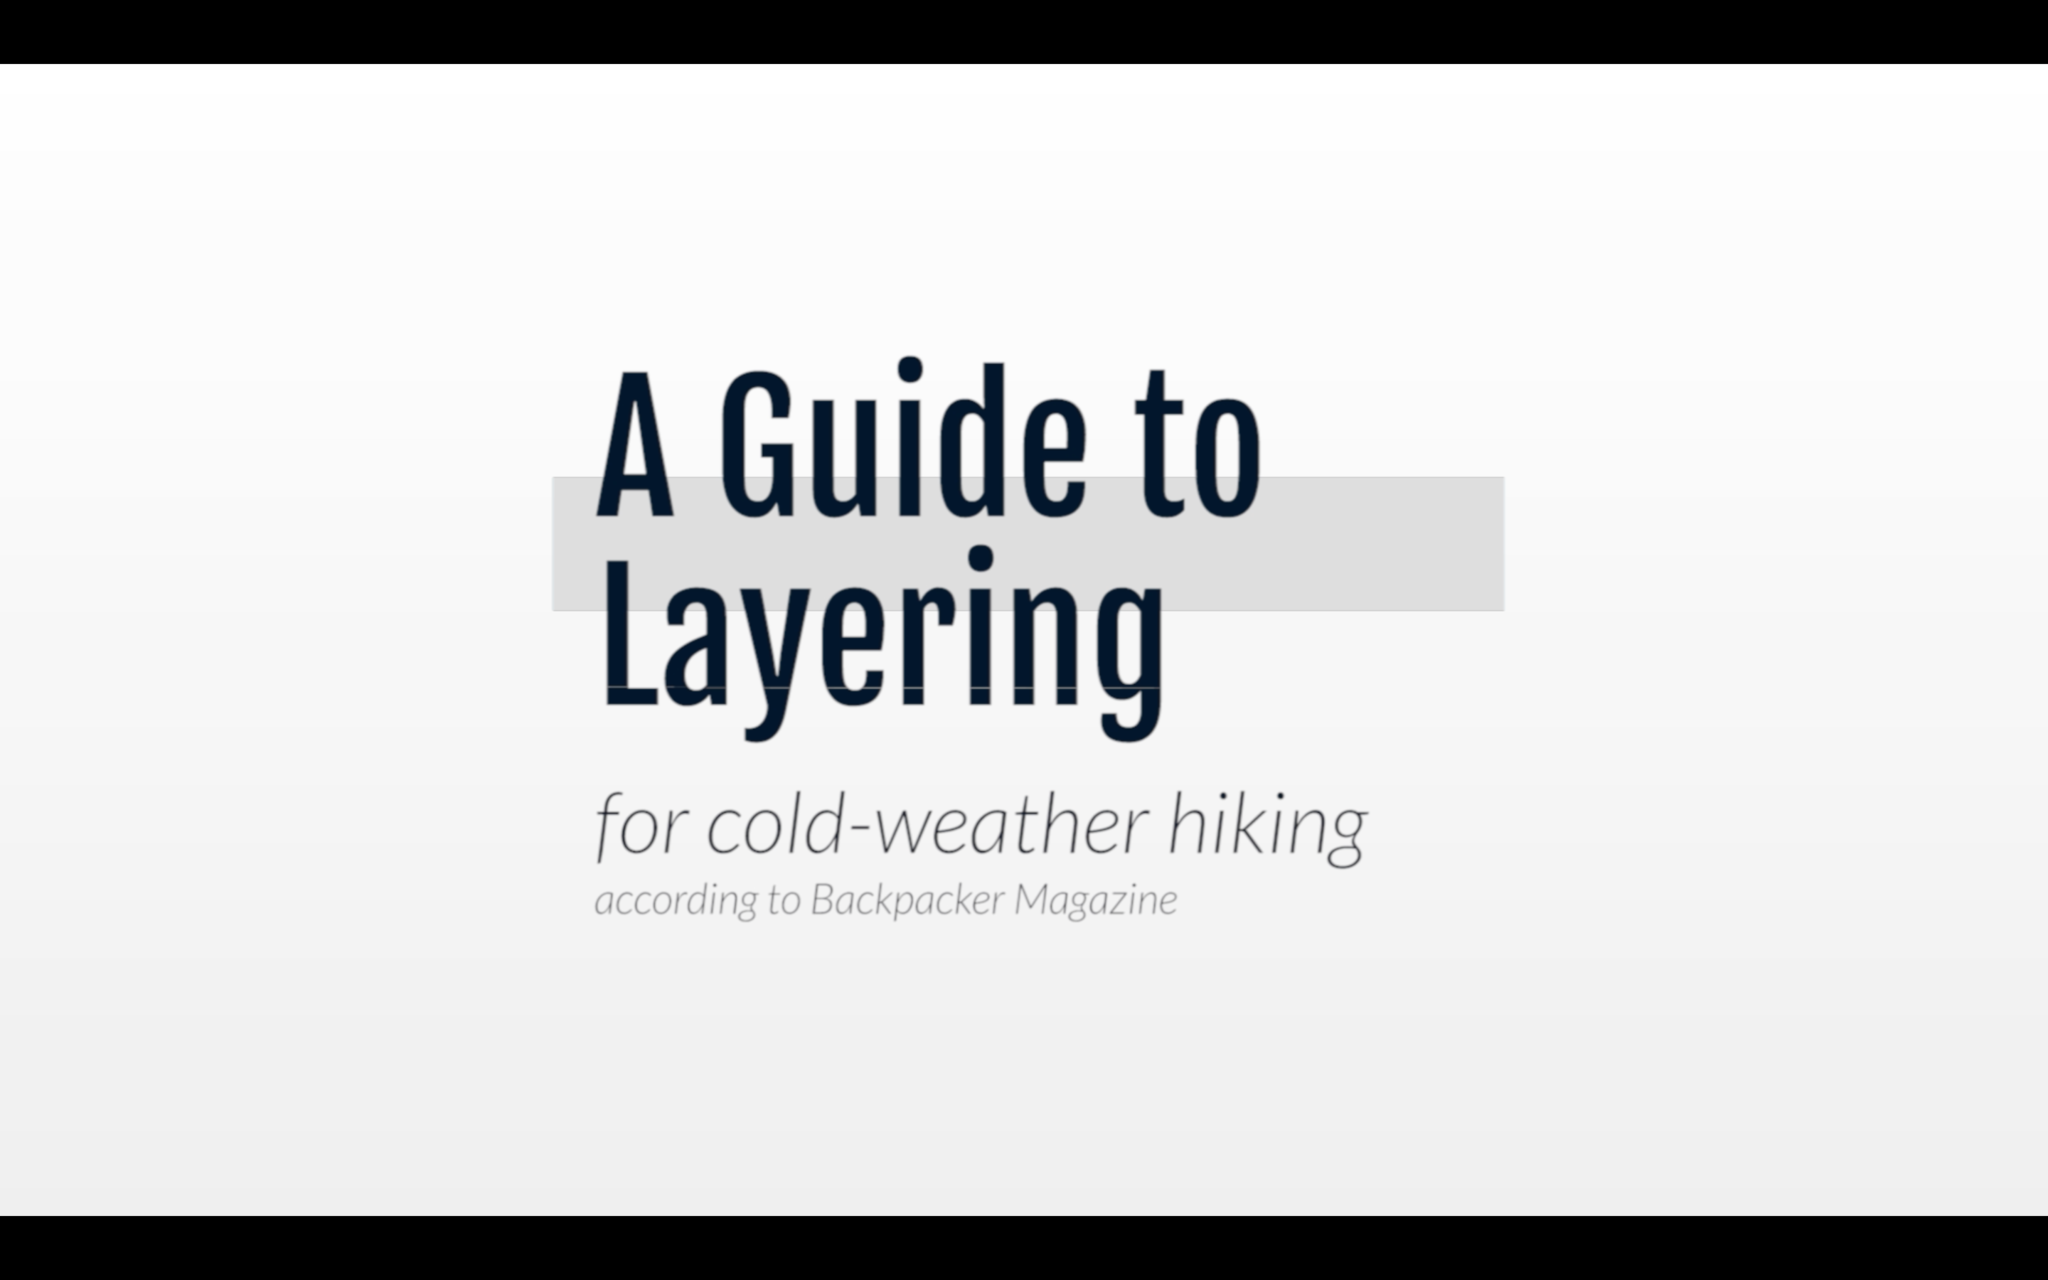 A Guide to Layering